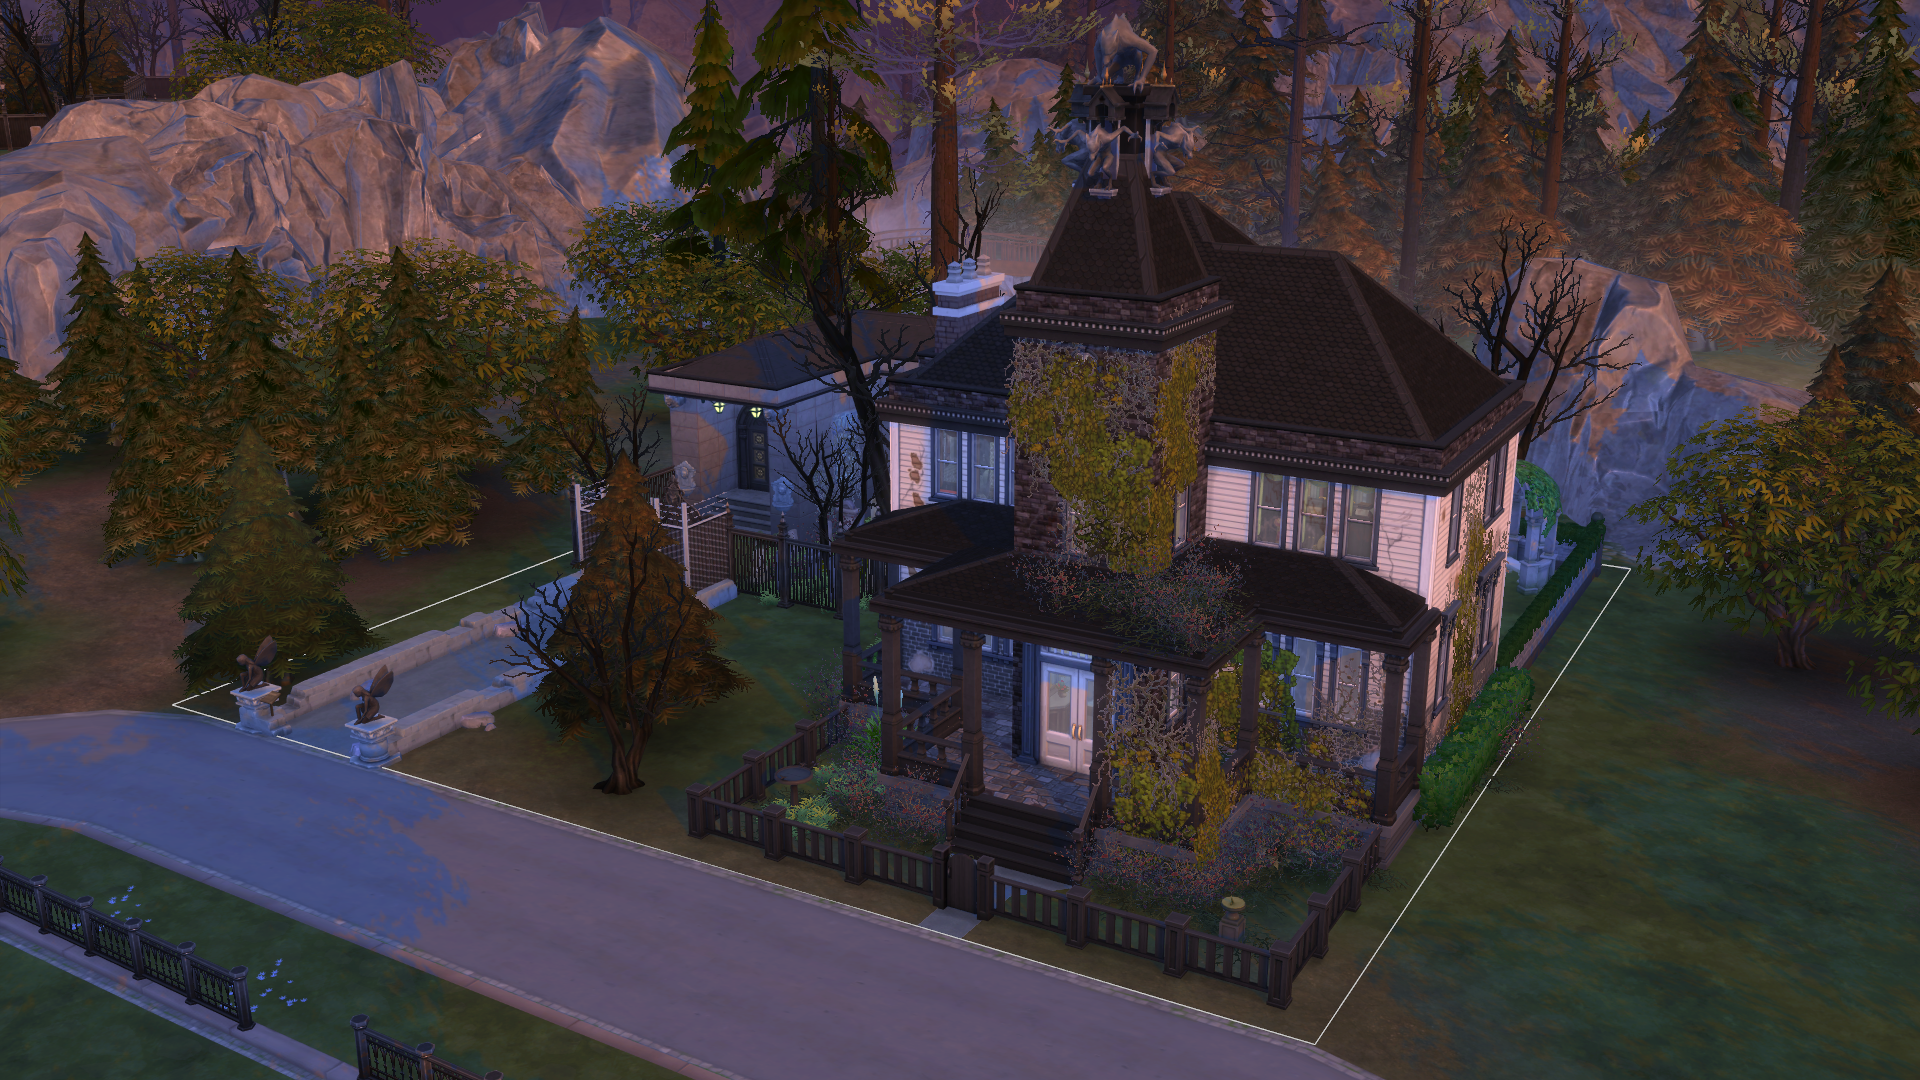 The Sims 4 Vampires Game Pack Review Simsvip